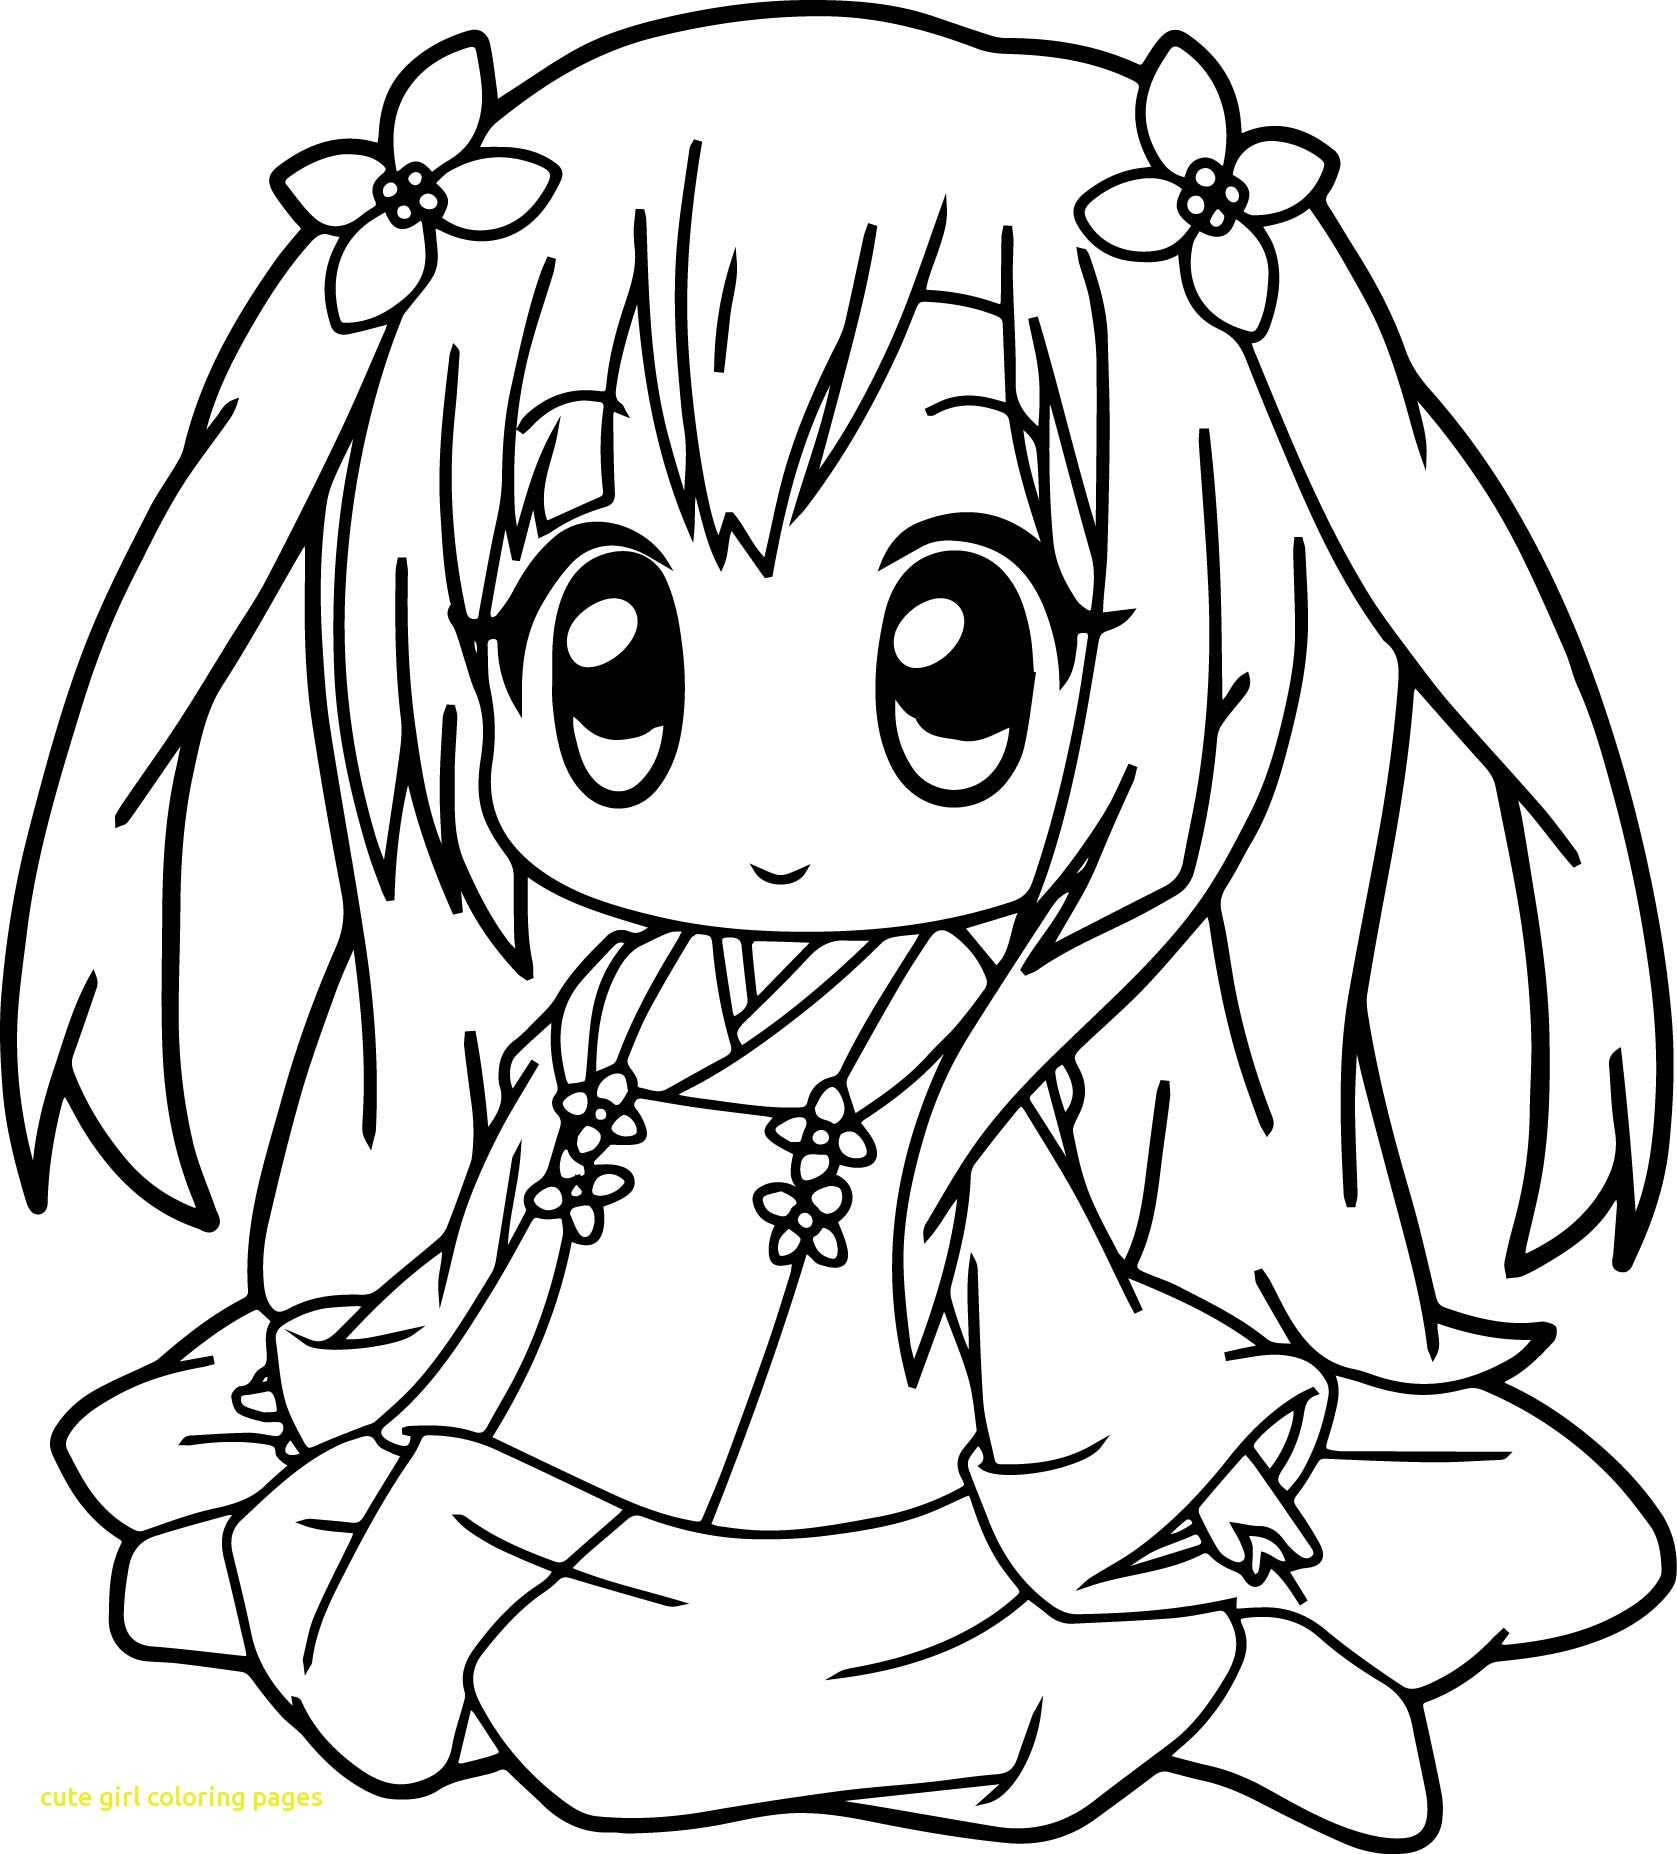 1677x1854 Cute Anime Coloring Pages Qqa Me Inside